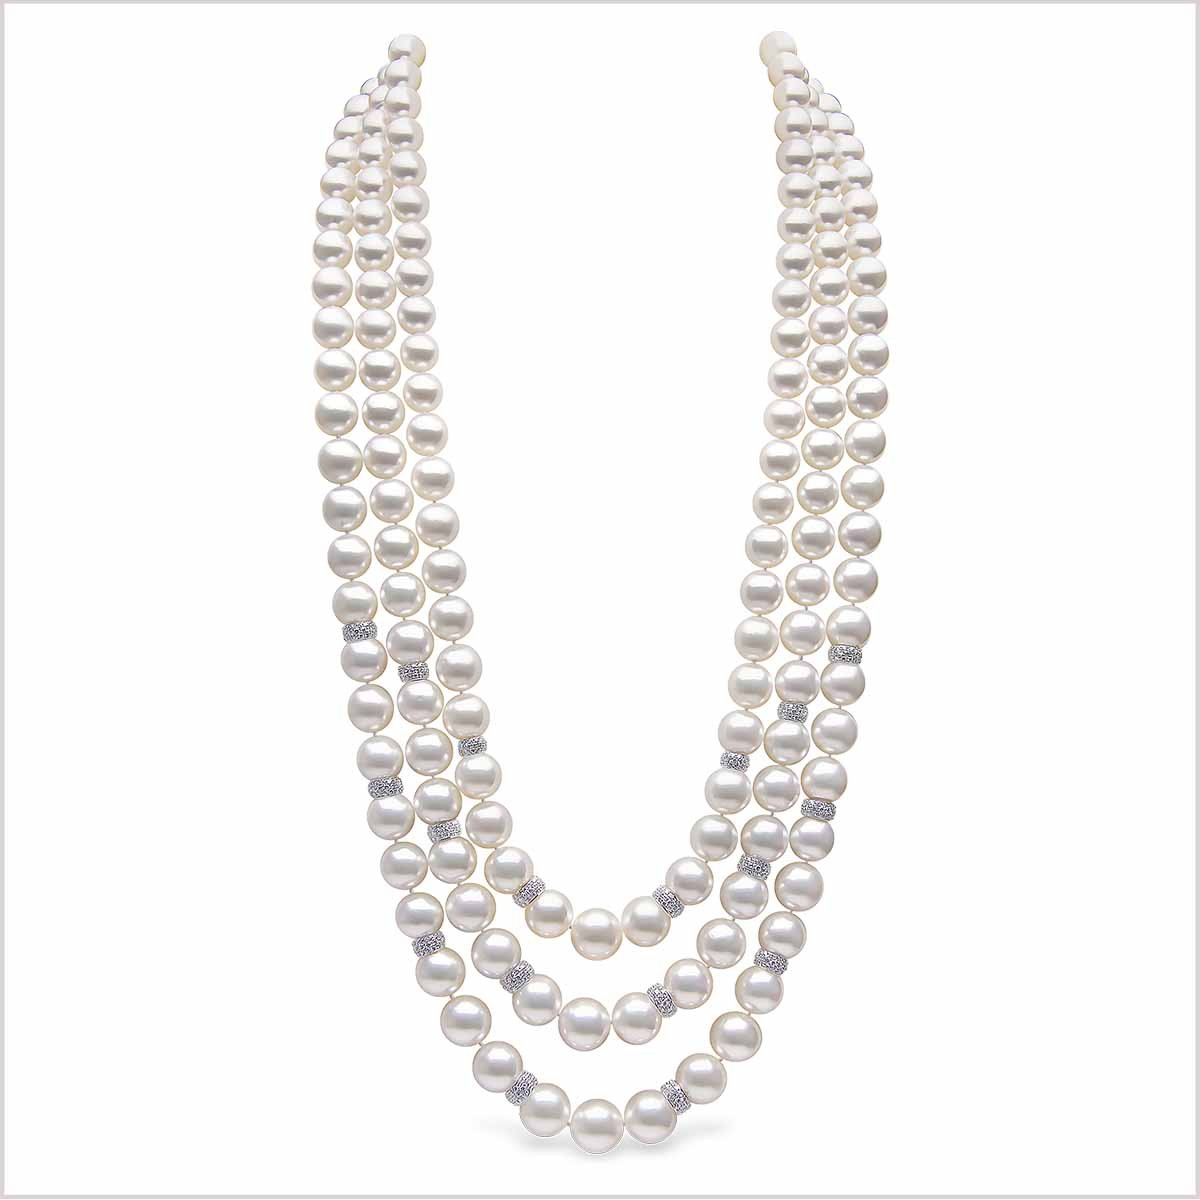 Yoko London Mayfair Diamond and Pearl Necklace